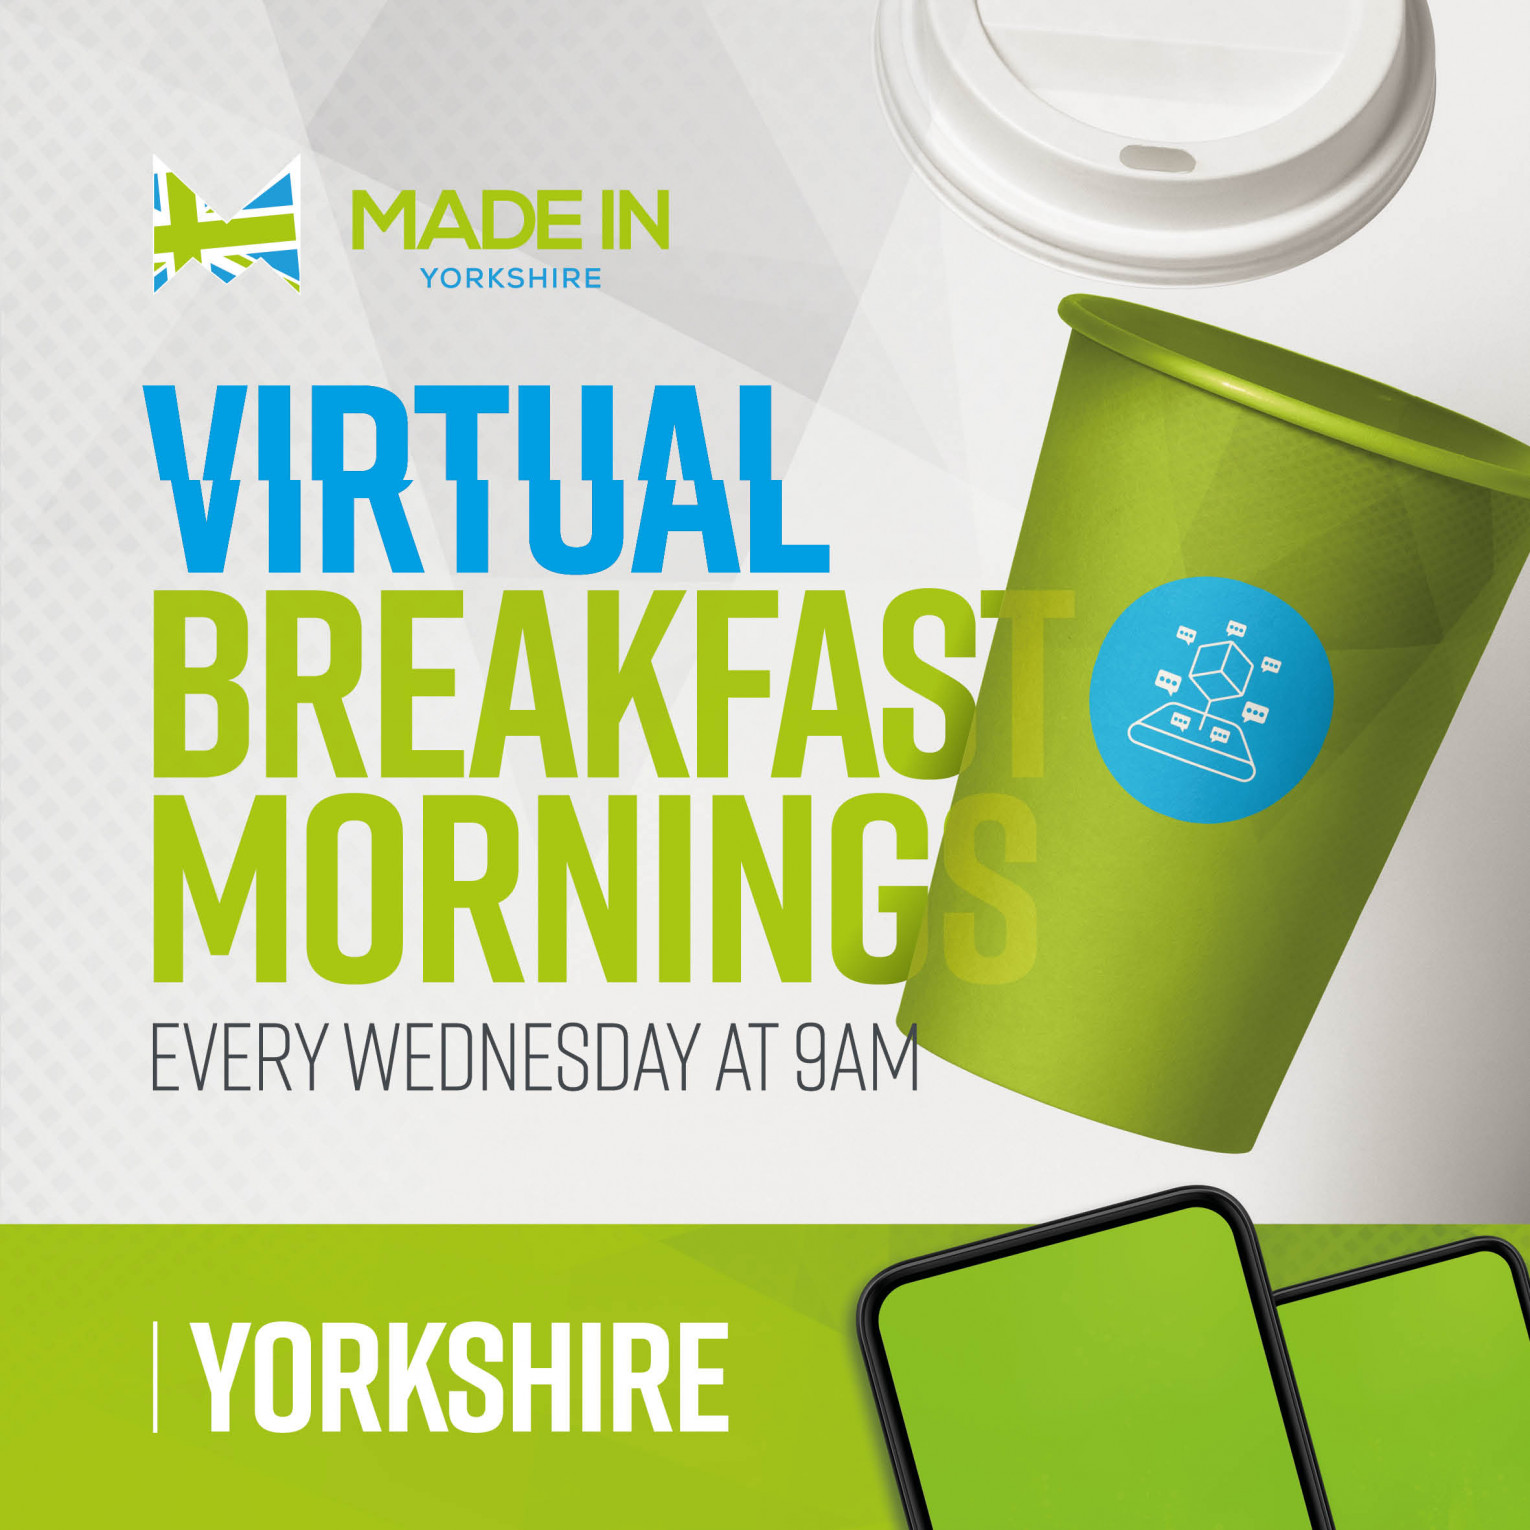 Made in Yorkshire Virtual Breakfast Morning with ROCOL